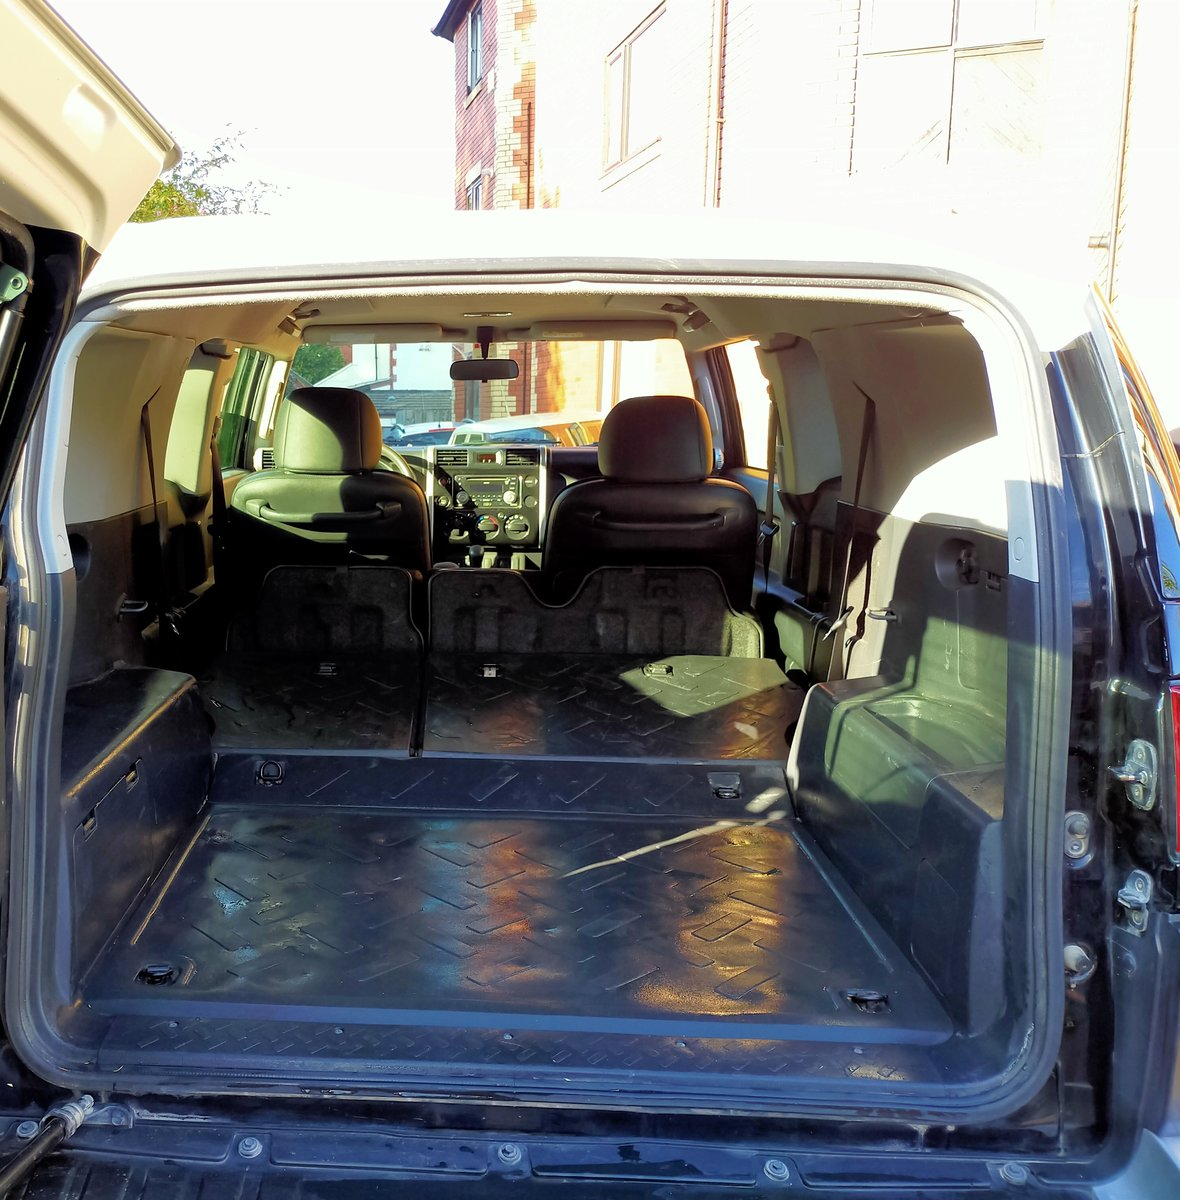 2013 Toyota FJ Cruiser 4.0 V6 (Left Hand Drive) For Sale (picture 6 of 6)